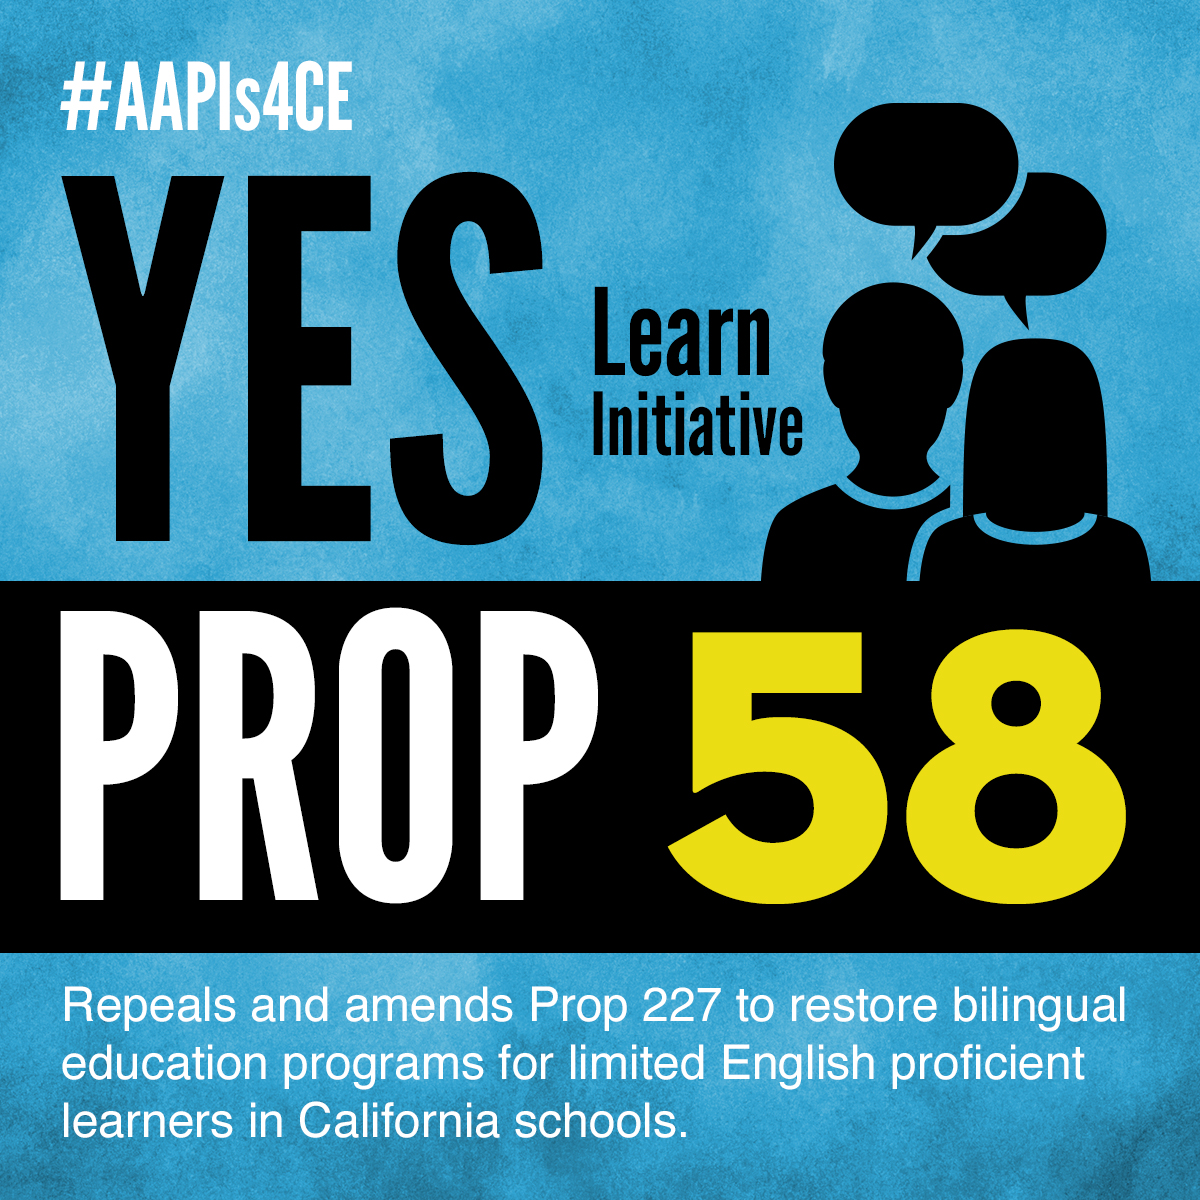 Yes on Proposition 58: LEARN Initiative